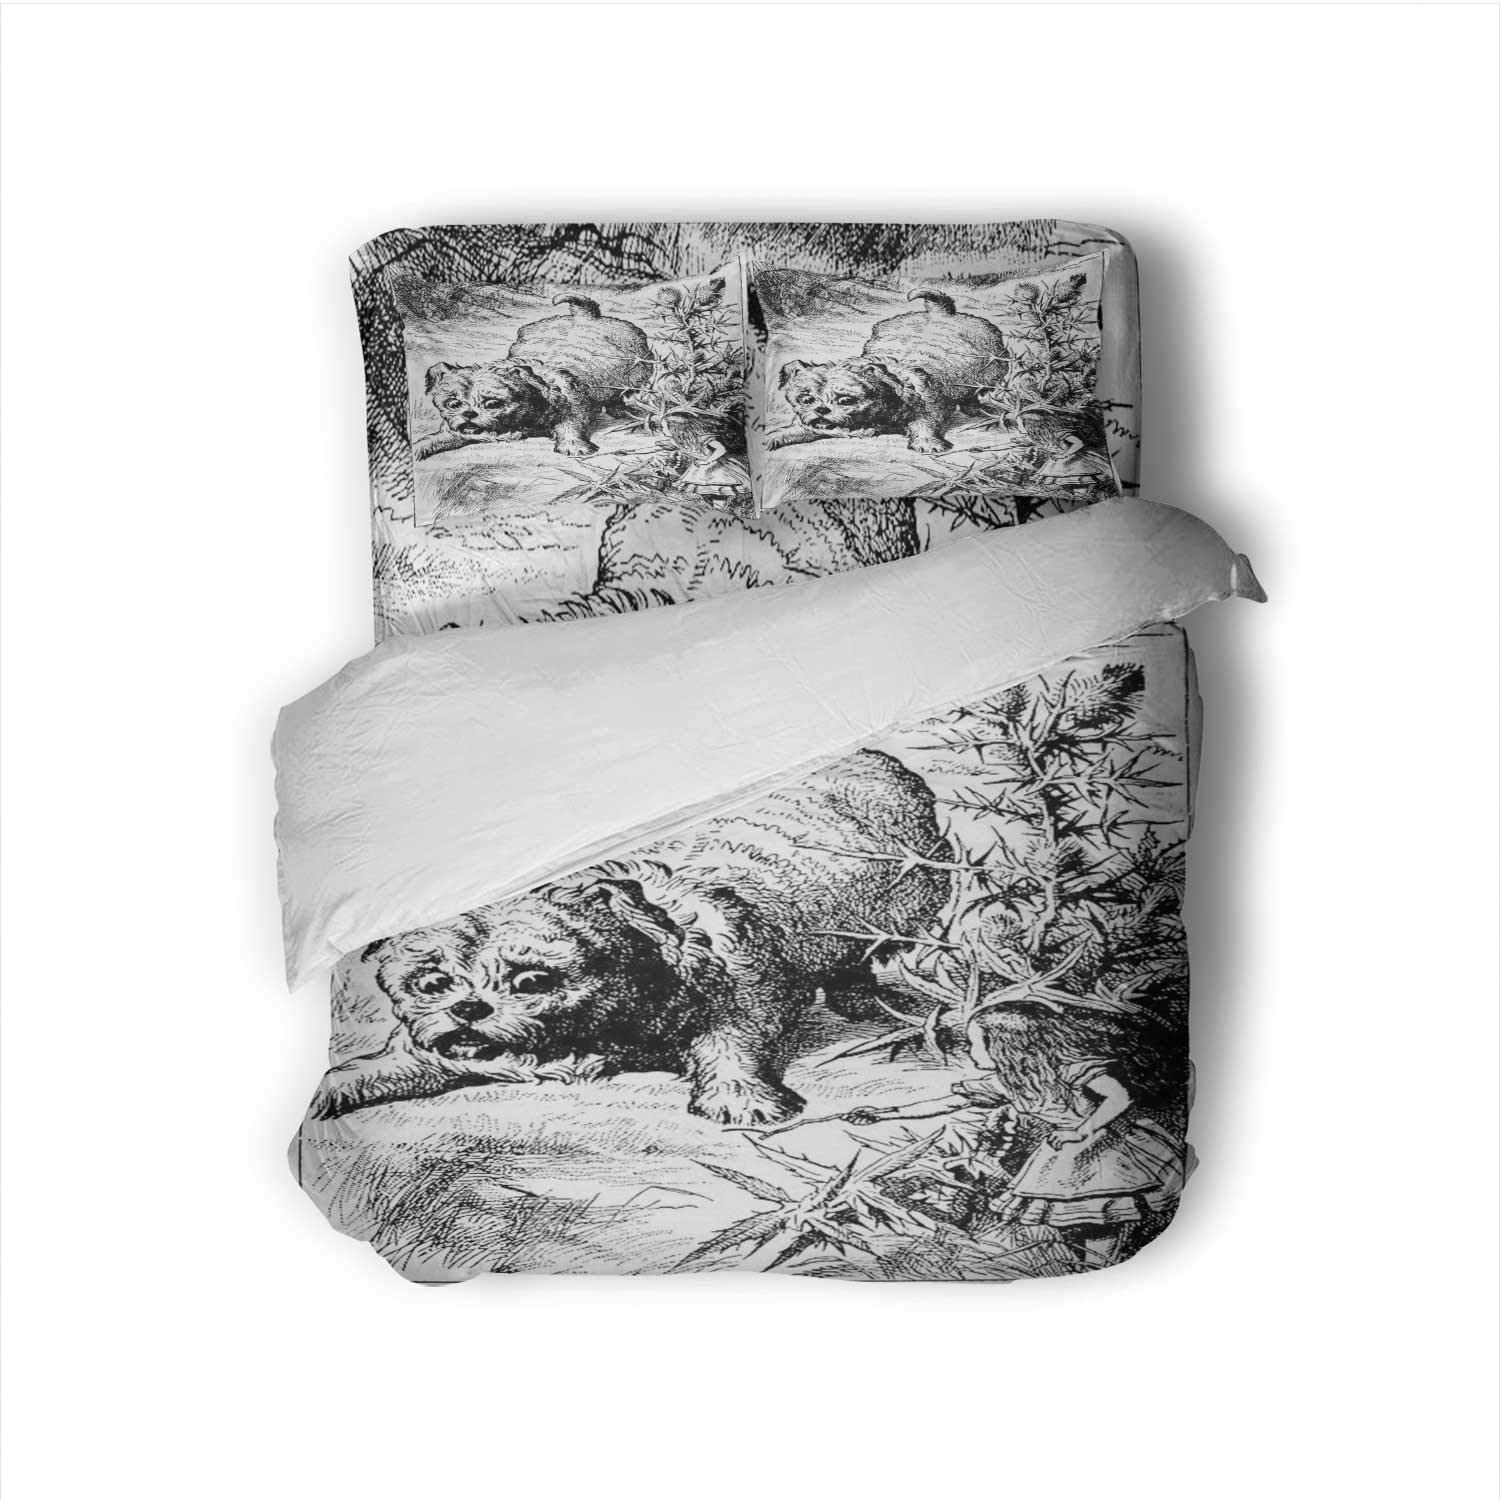 Hitecera Giant Dog -,100% Cotton King Size Sheets Set - Soft 4 Piece Sheets and Pillowcases (- 's Adventures in Wonderland) - - Illustration King